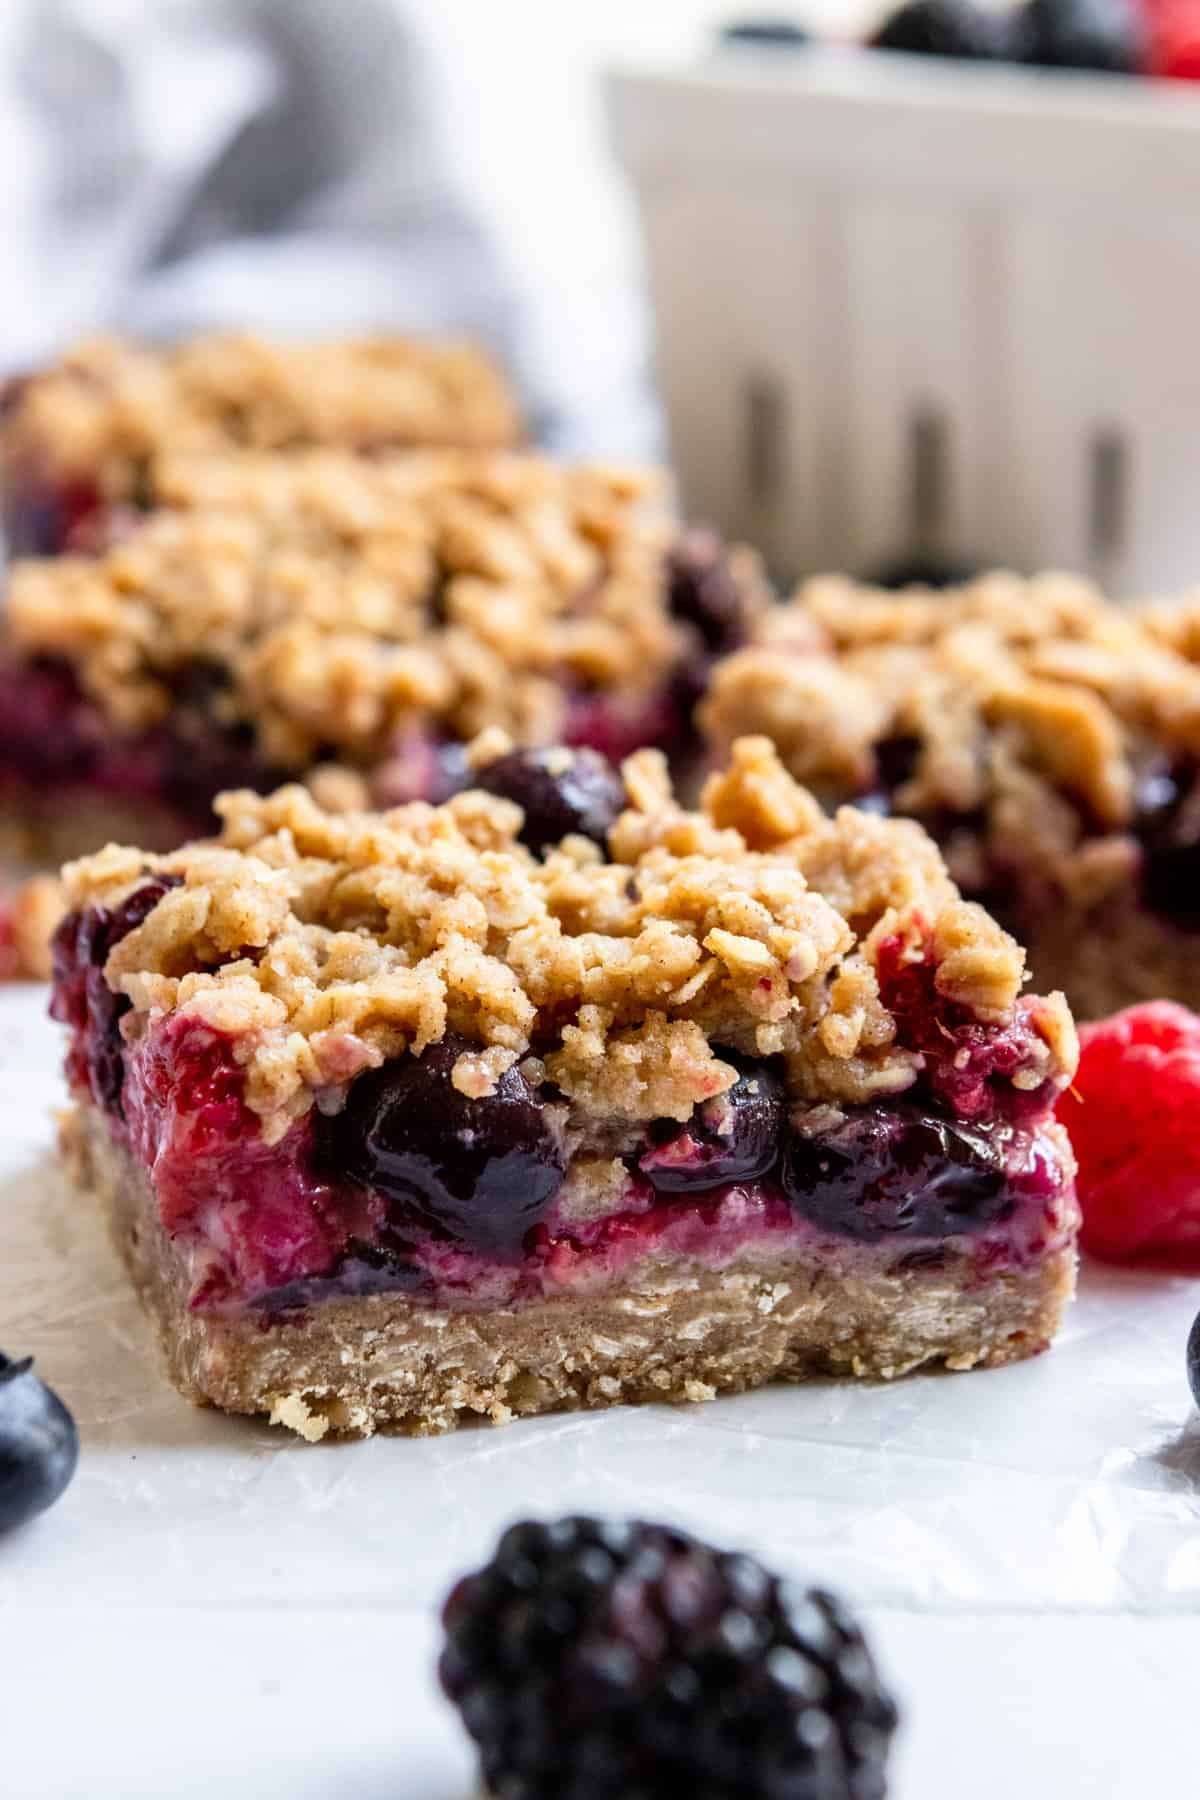 Oatmeal crumble bars on wax paper with berries in white container.